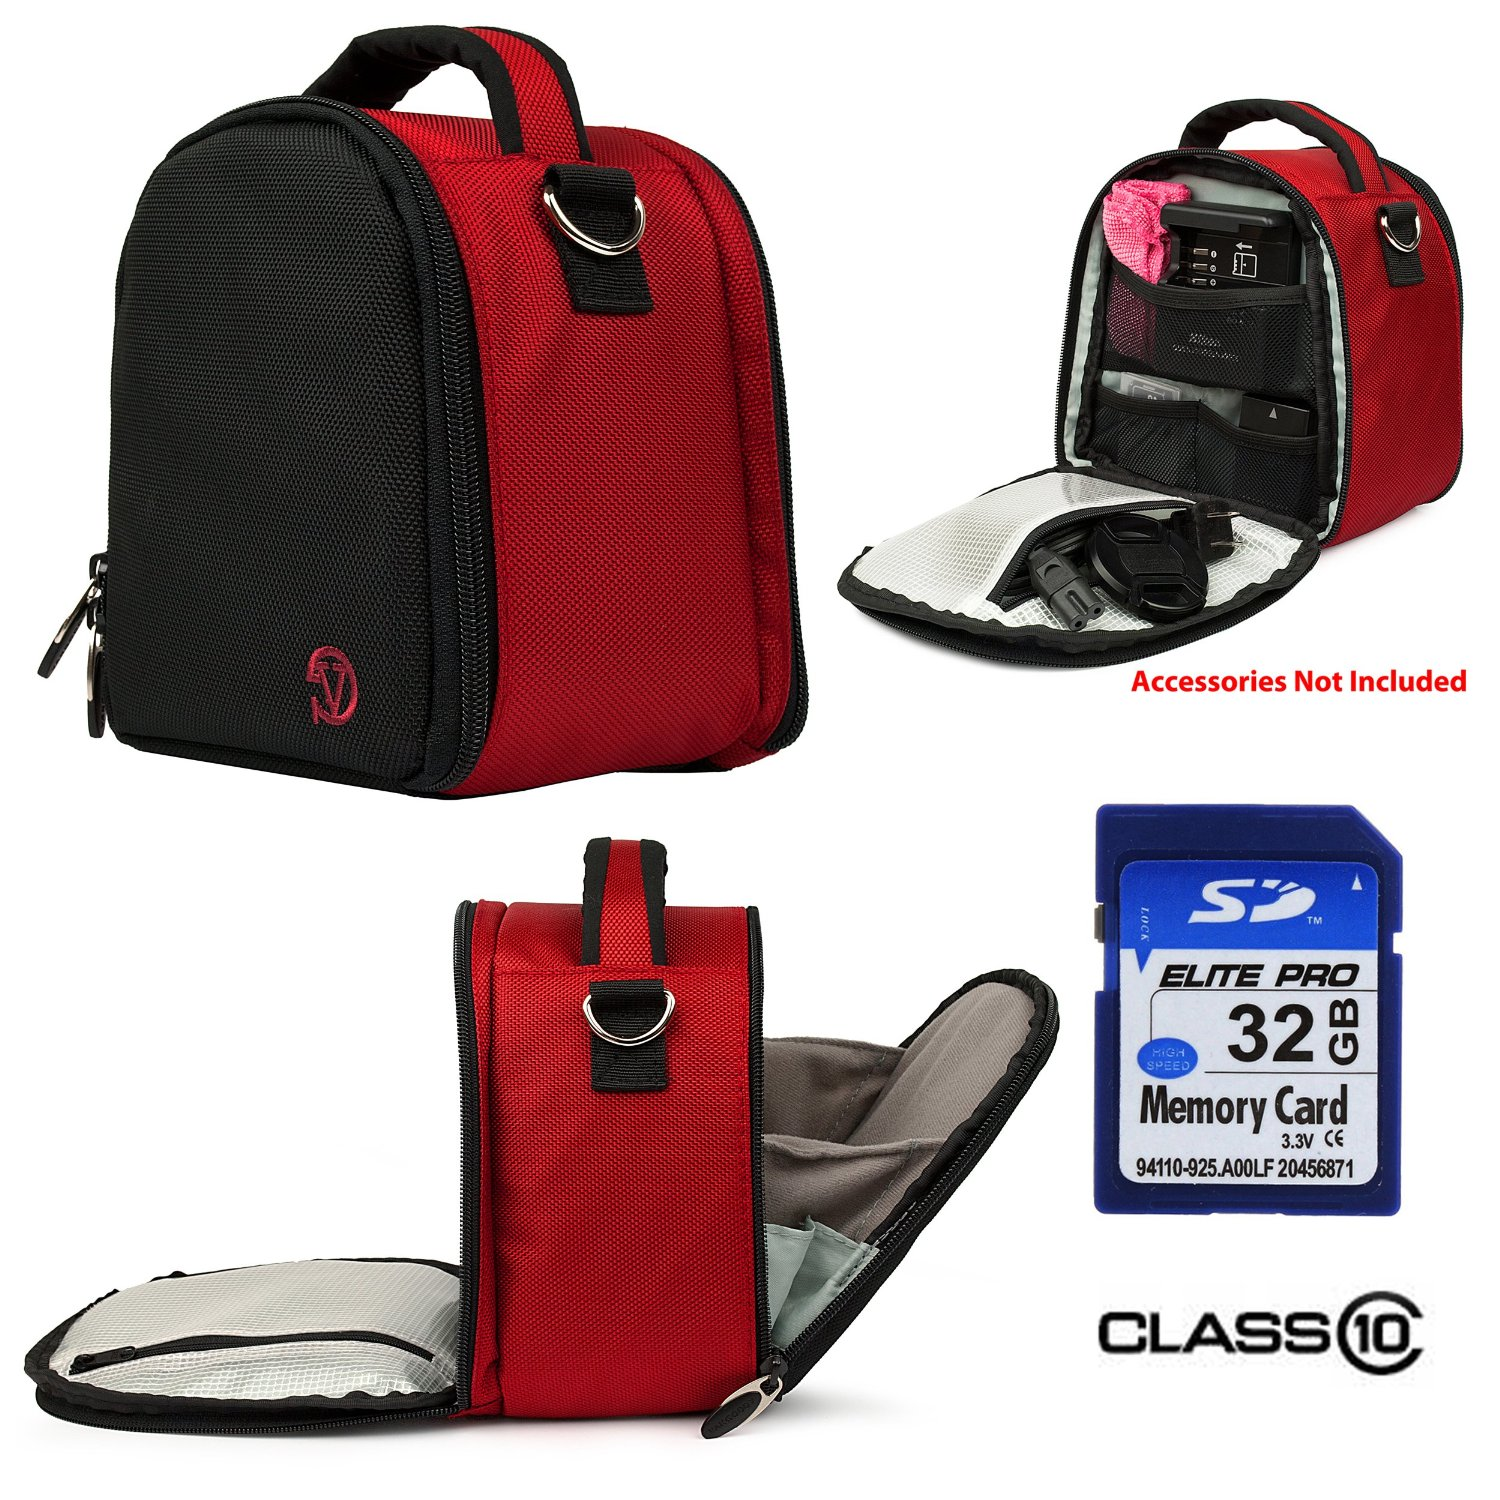 T5 T6s Digital SLR Camera and Screen Protector and Screen Protector and Mini Tripod Nylon SLR Bag Red for Canon EOS Rebel T5i T3i T3i